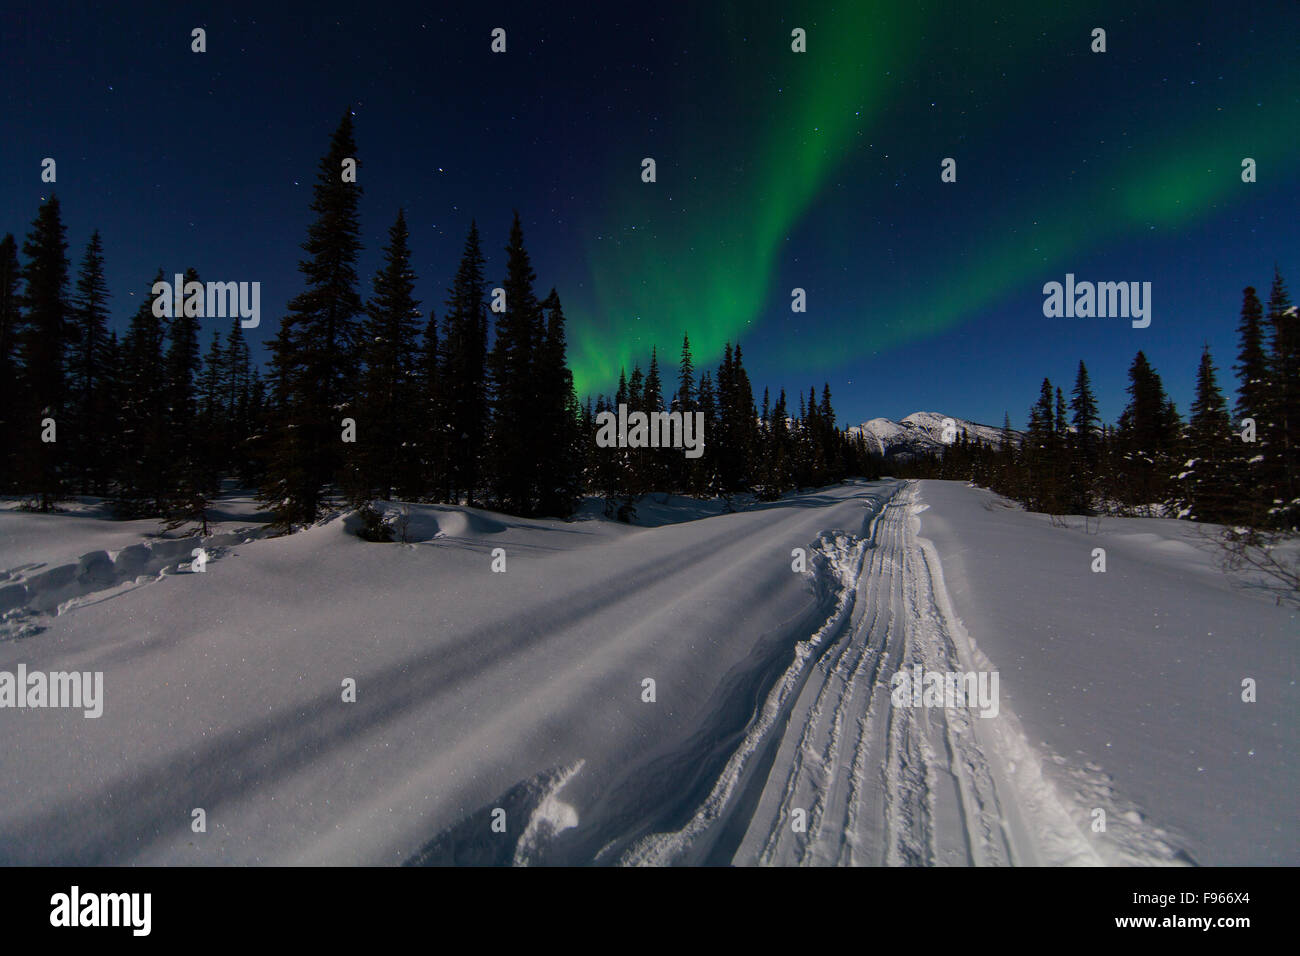 A snowmobile trail at night contrasts against the Northern Lights (Aurora Borealis) dancing in a northern sky along - Stock Image